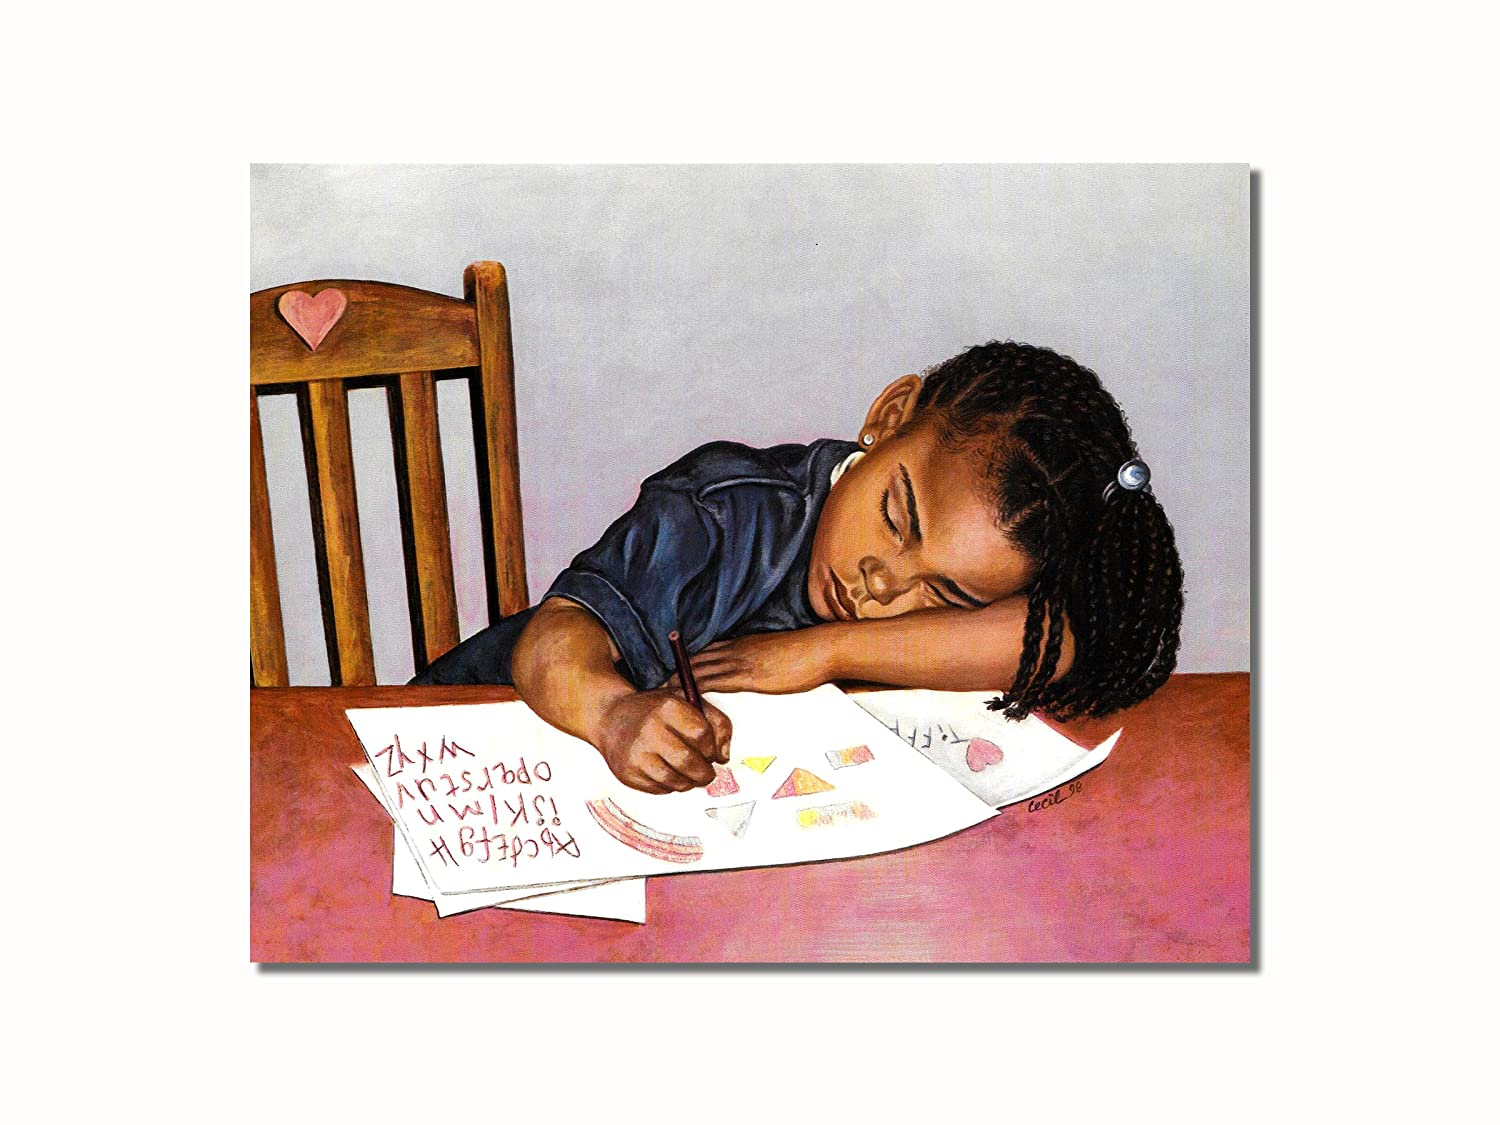 african-american-black-girl-at-table-doing-homework-wall-picture-8x10-art-print by art-prints-inc